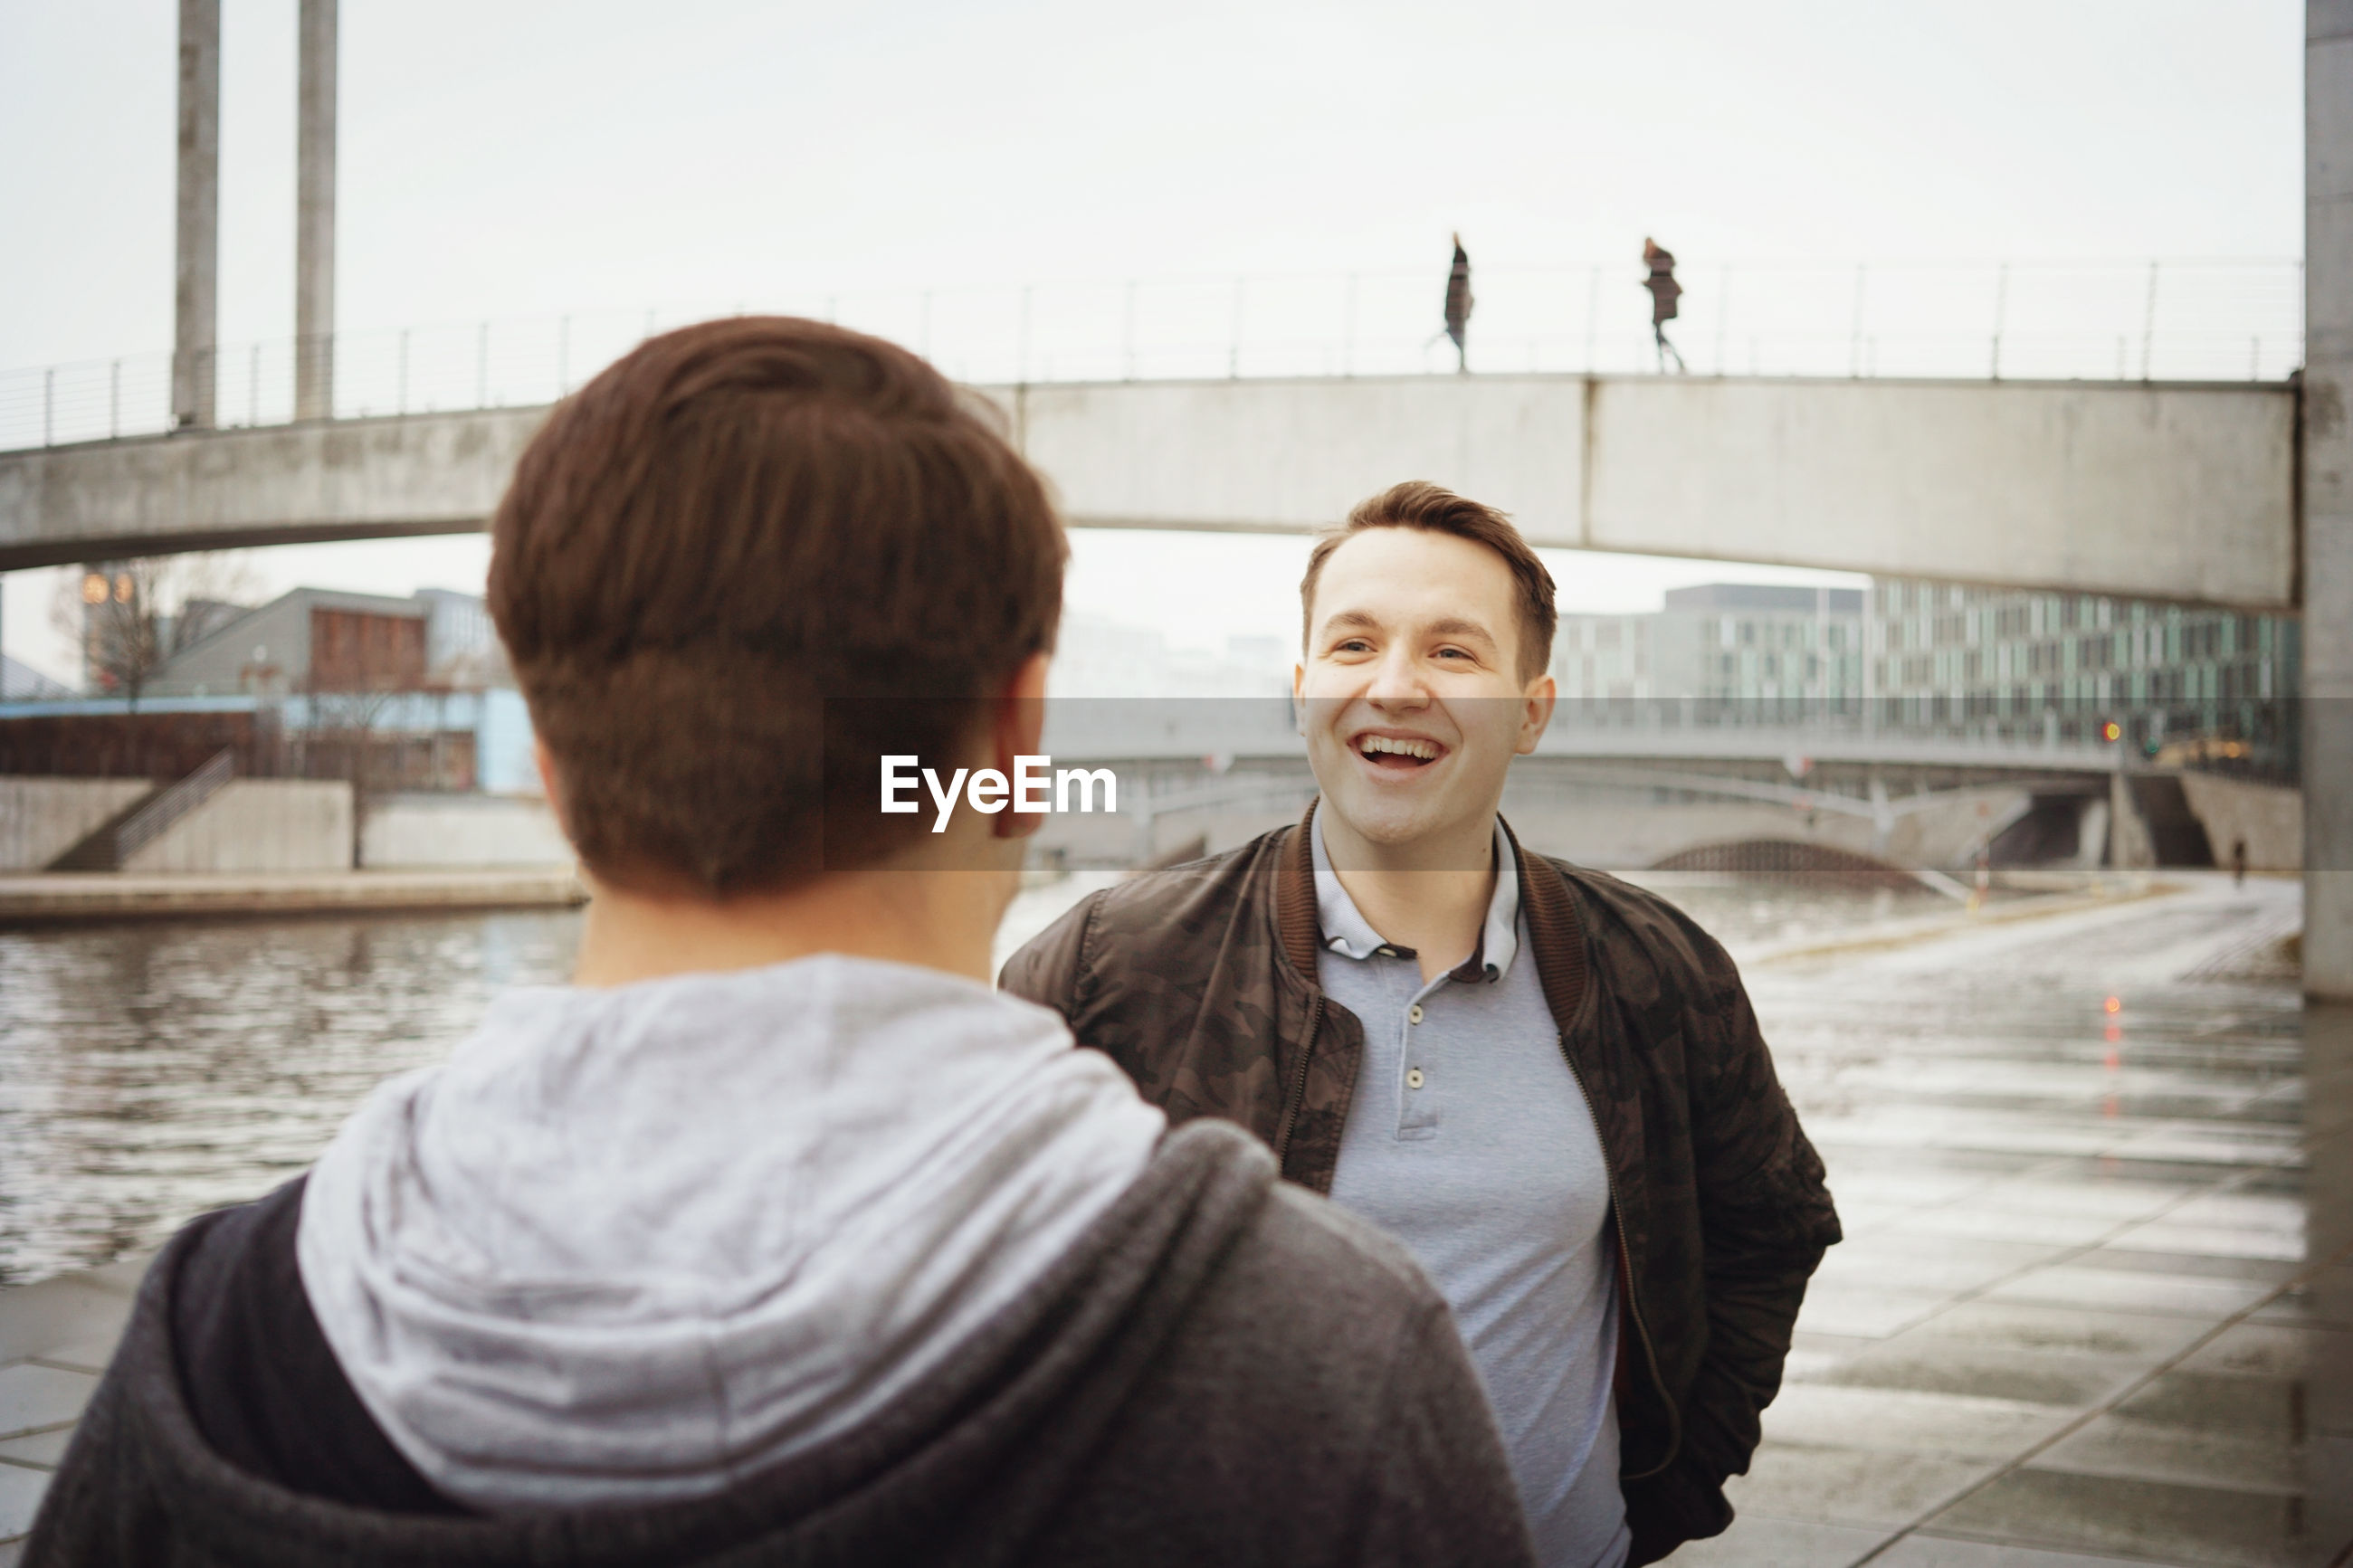 Smiling man talking with friend against bridge in city